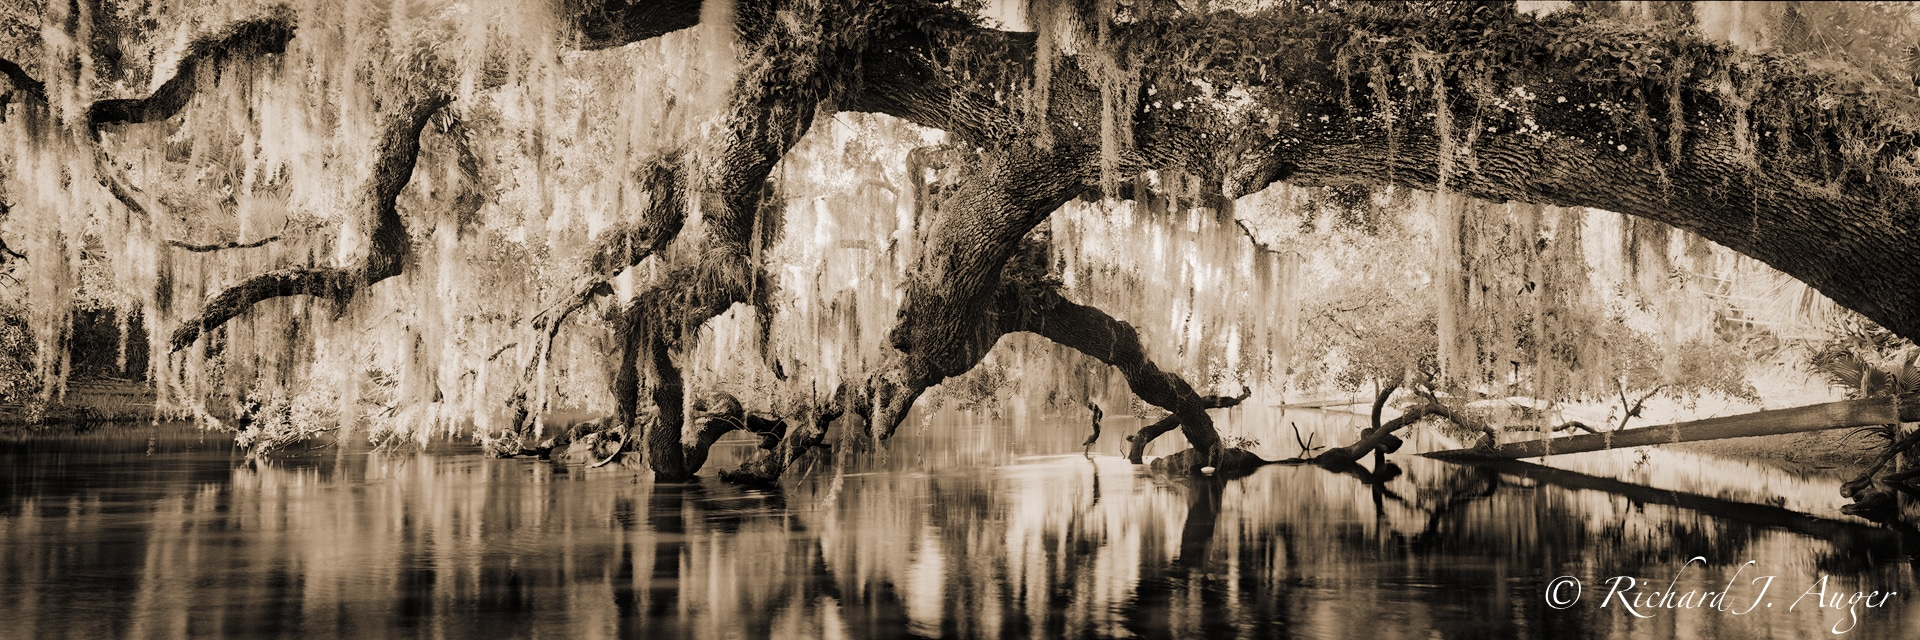 St Johns River, Oak Tree, Reflections, water, swamp, photograph, landscape